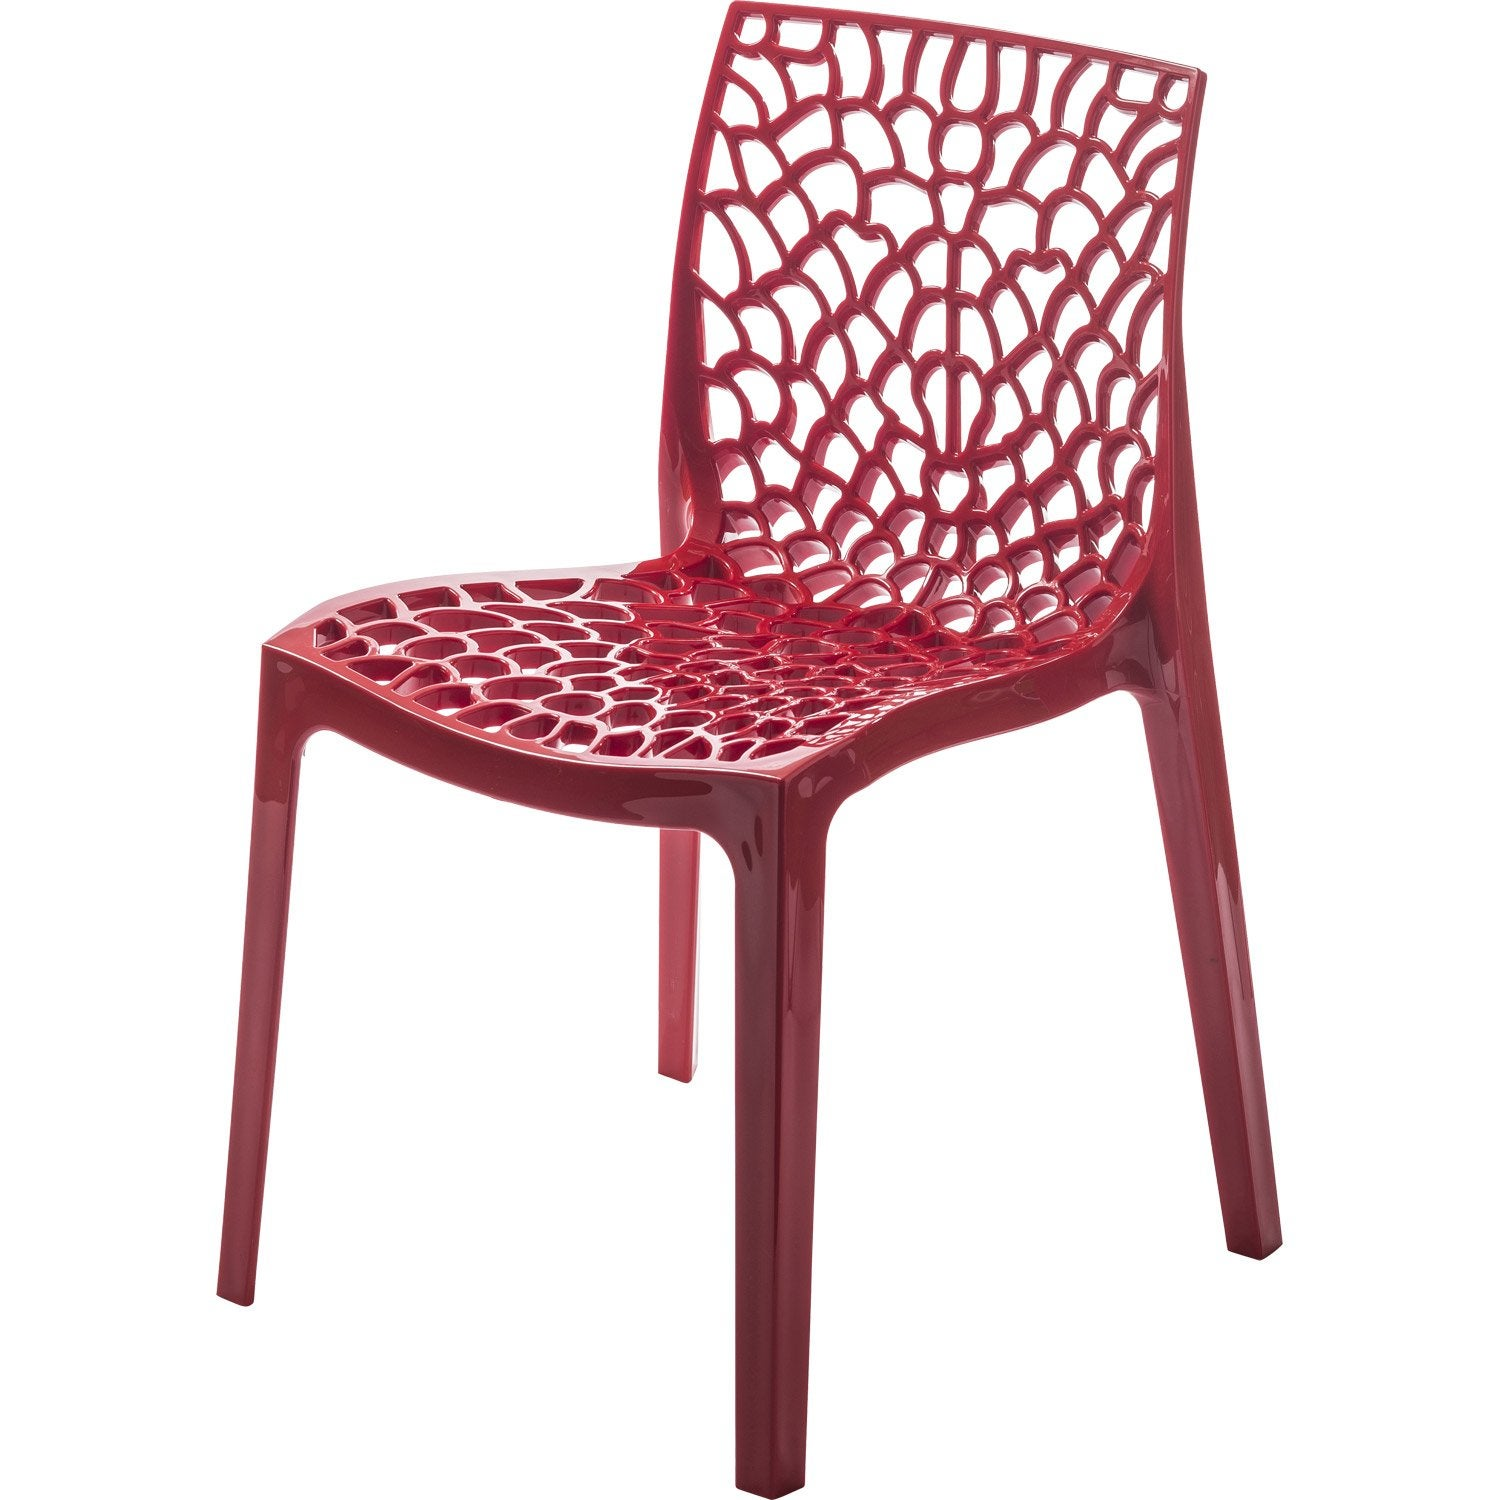 Chaise de jardin en r sine grafik rouge leroy merlin for Chaises de couleur design